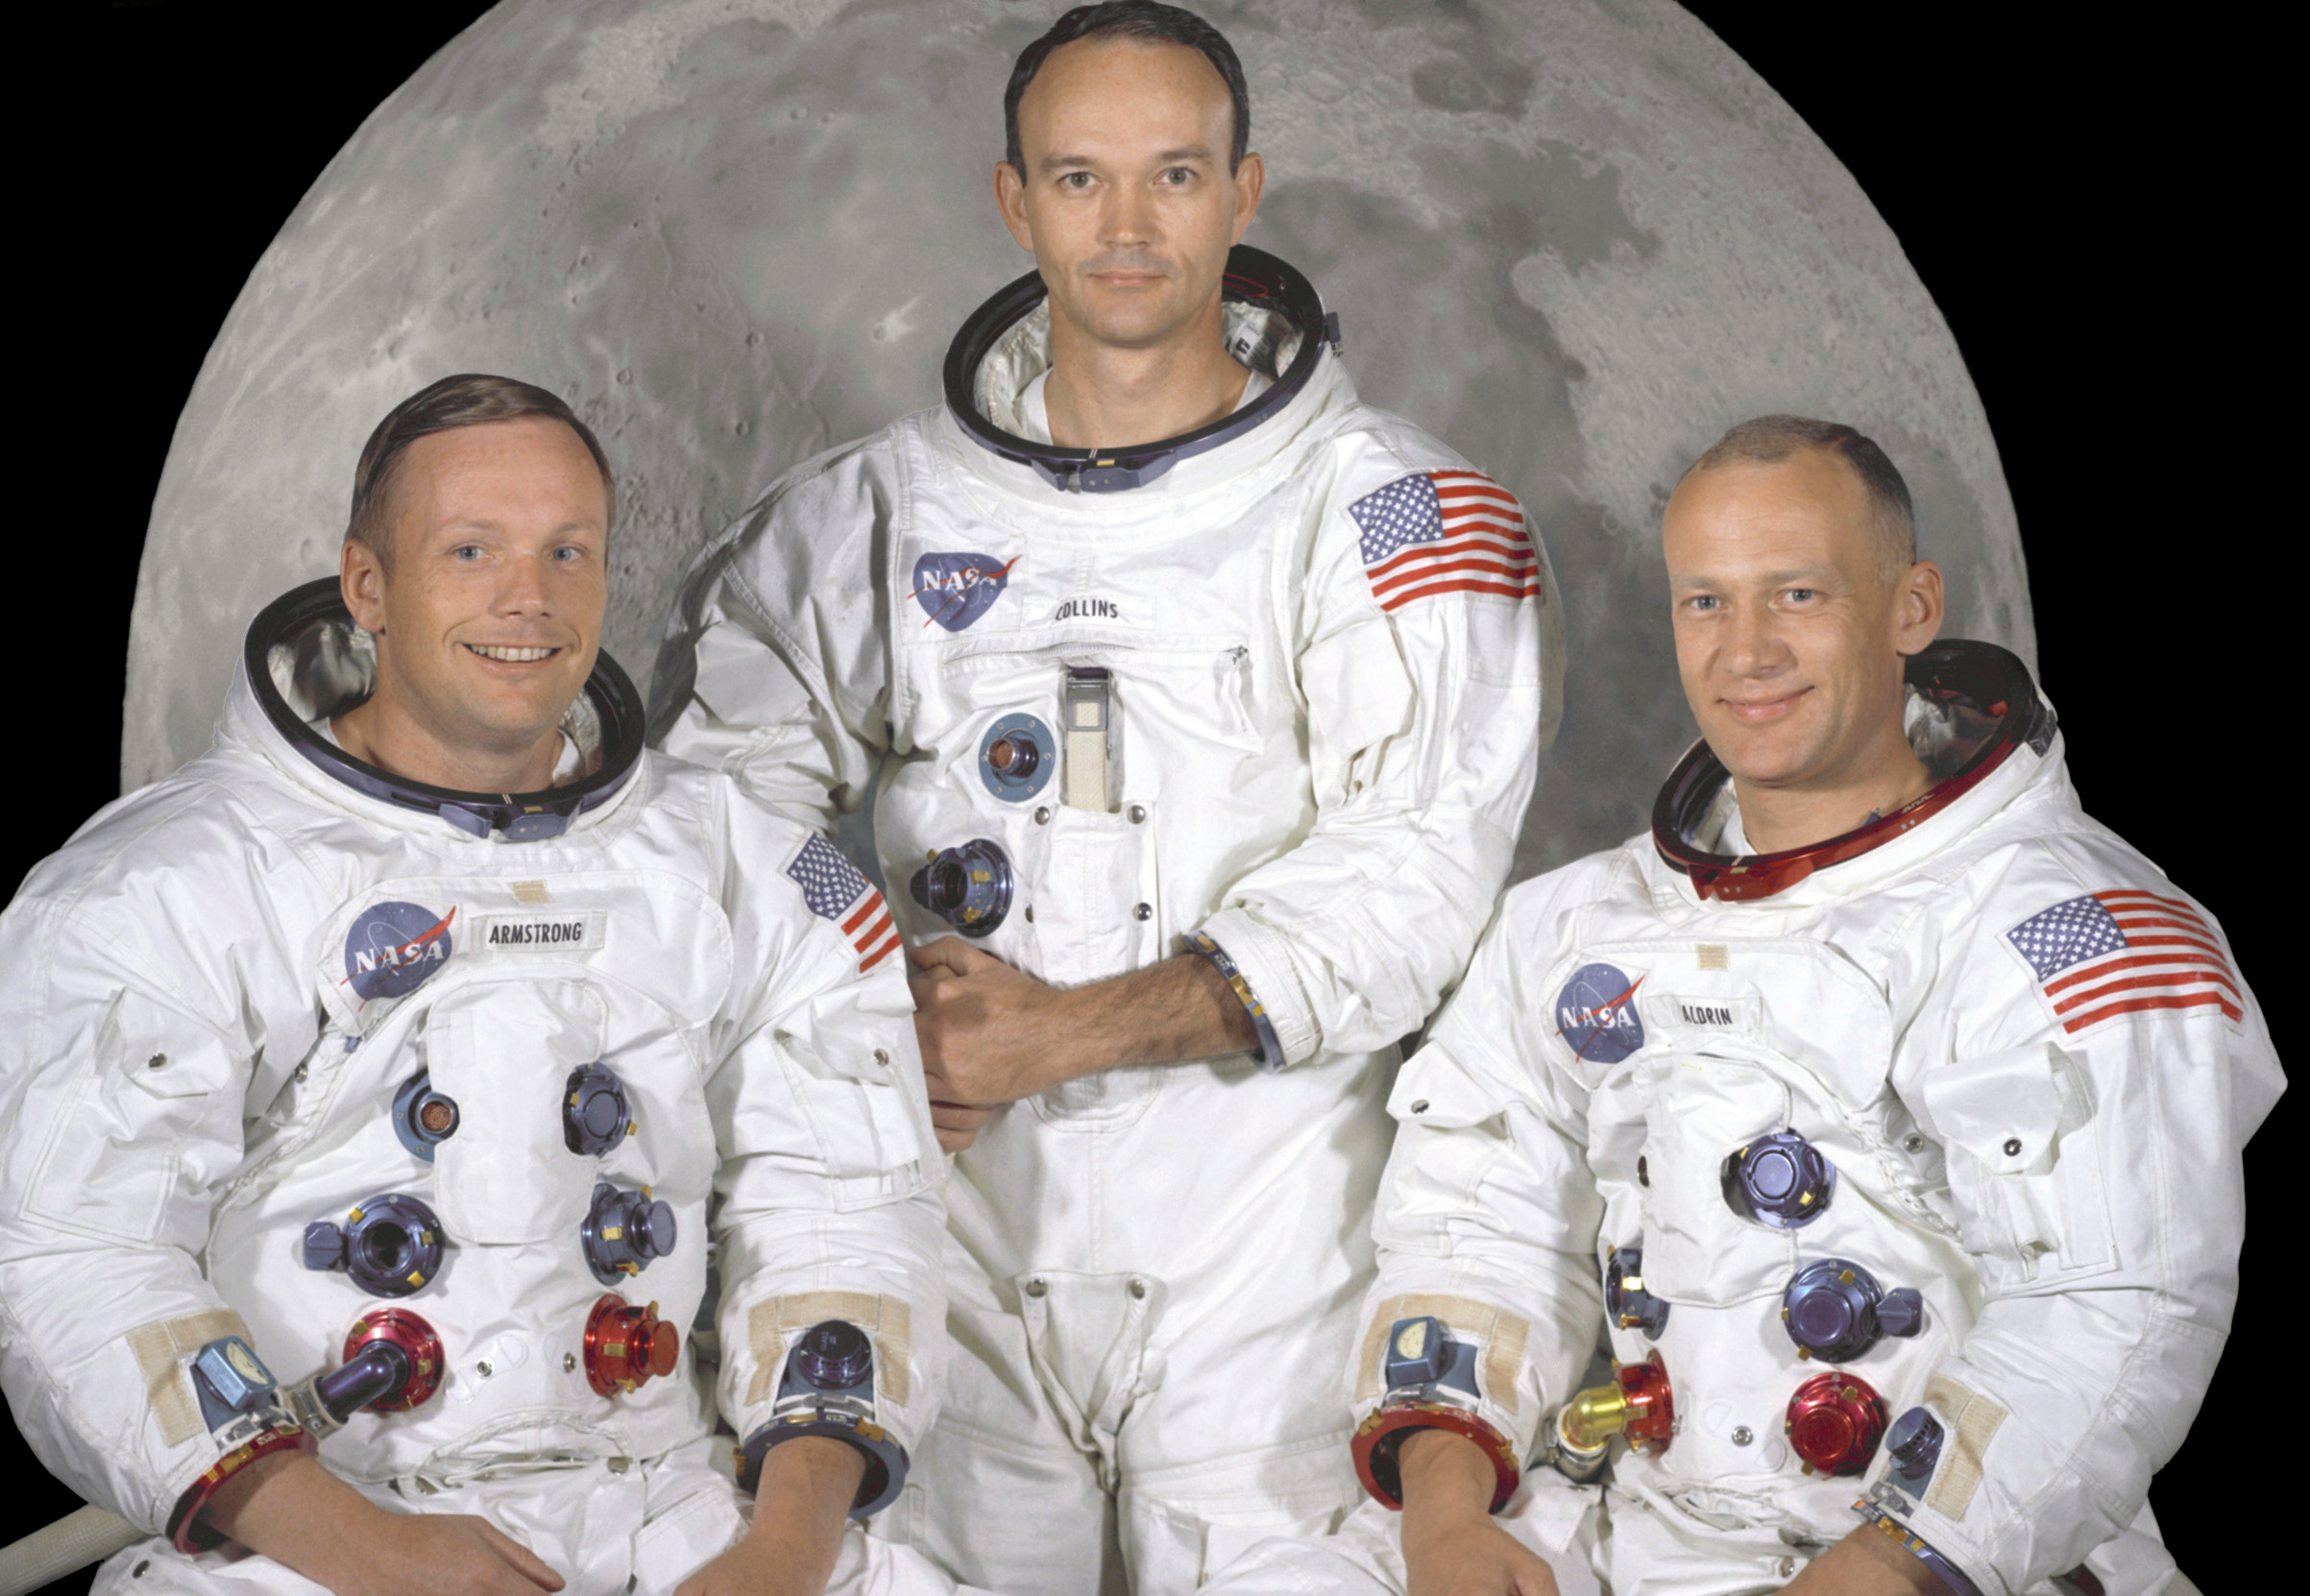 This NASA studio file image, dated May 1, 1969, shows the Apollo 11 crew of U.S. astronauts Neil Armstrong, (L) who was the Mission Commander and the first man to step on the moon, Edwin